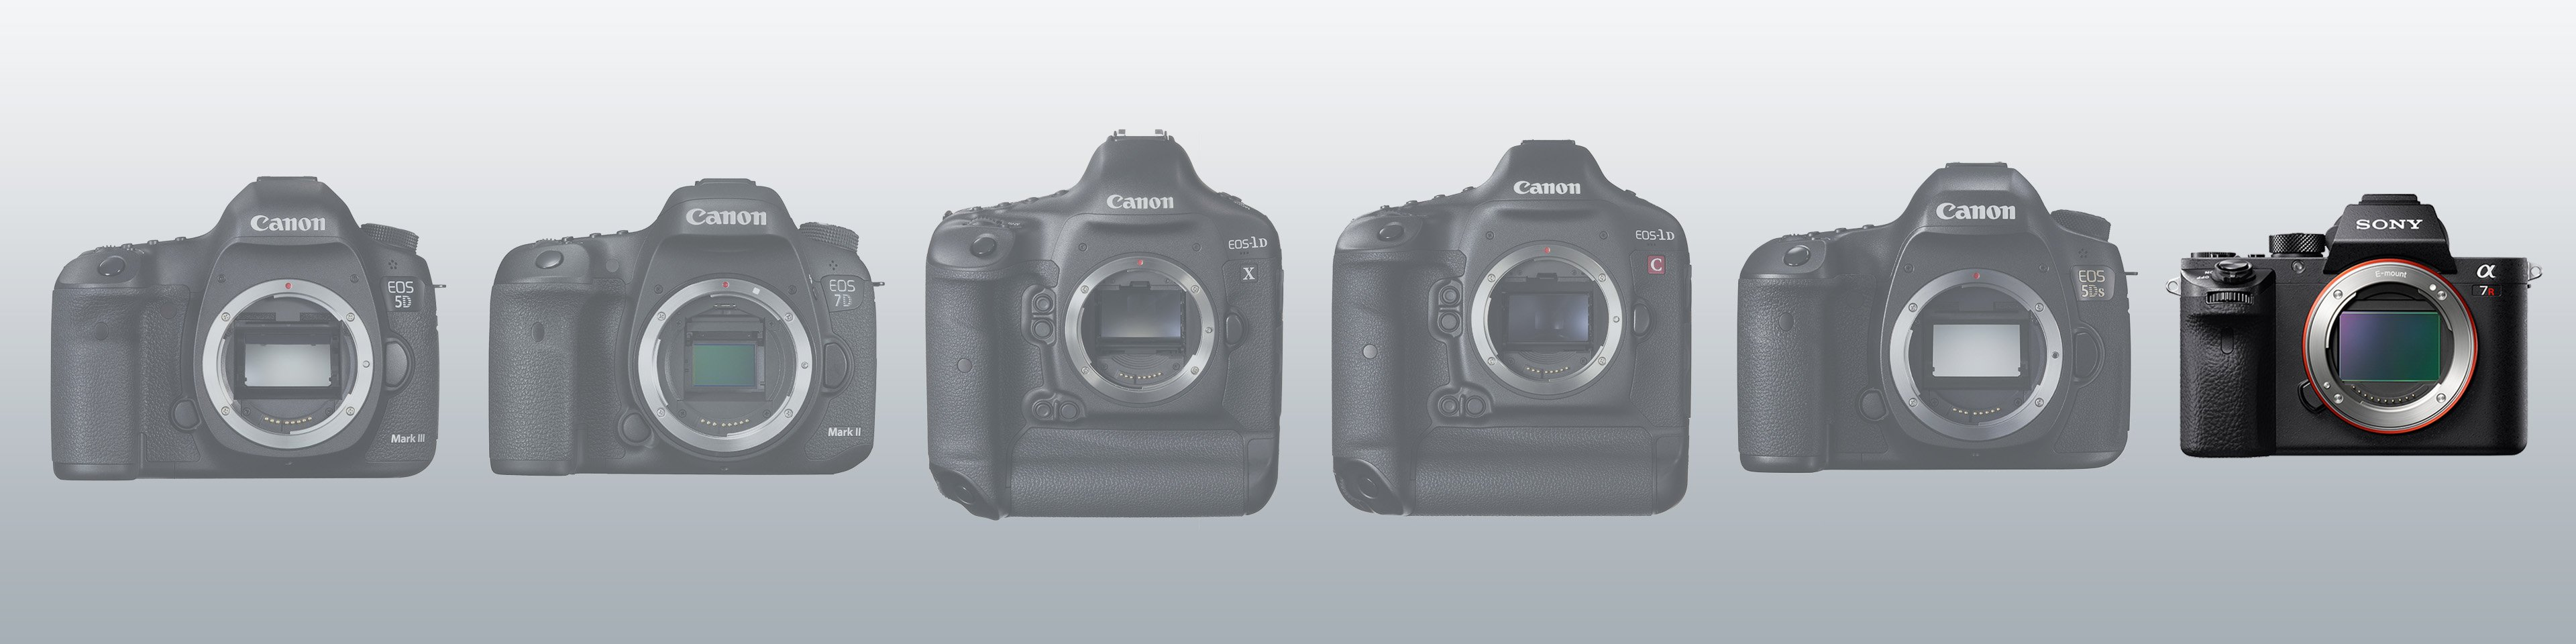 Which camera should I buy? The Sony A7R II of course!